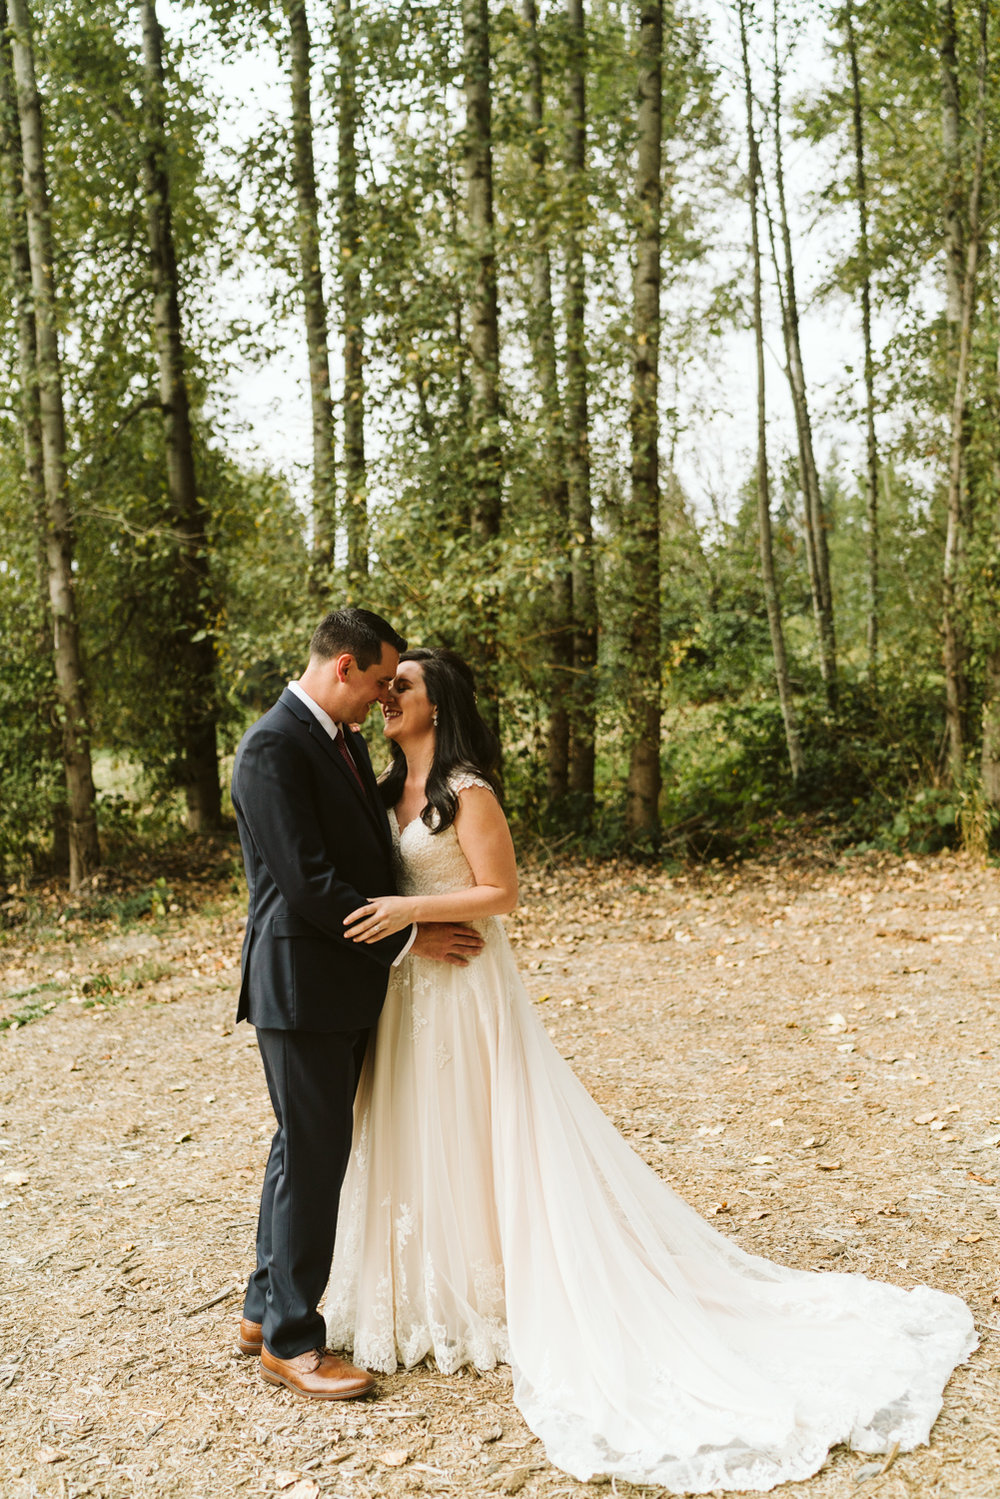 April Yentas Photography - erin & ian slideshow-27.jpg